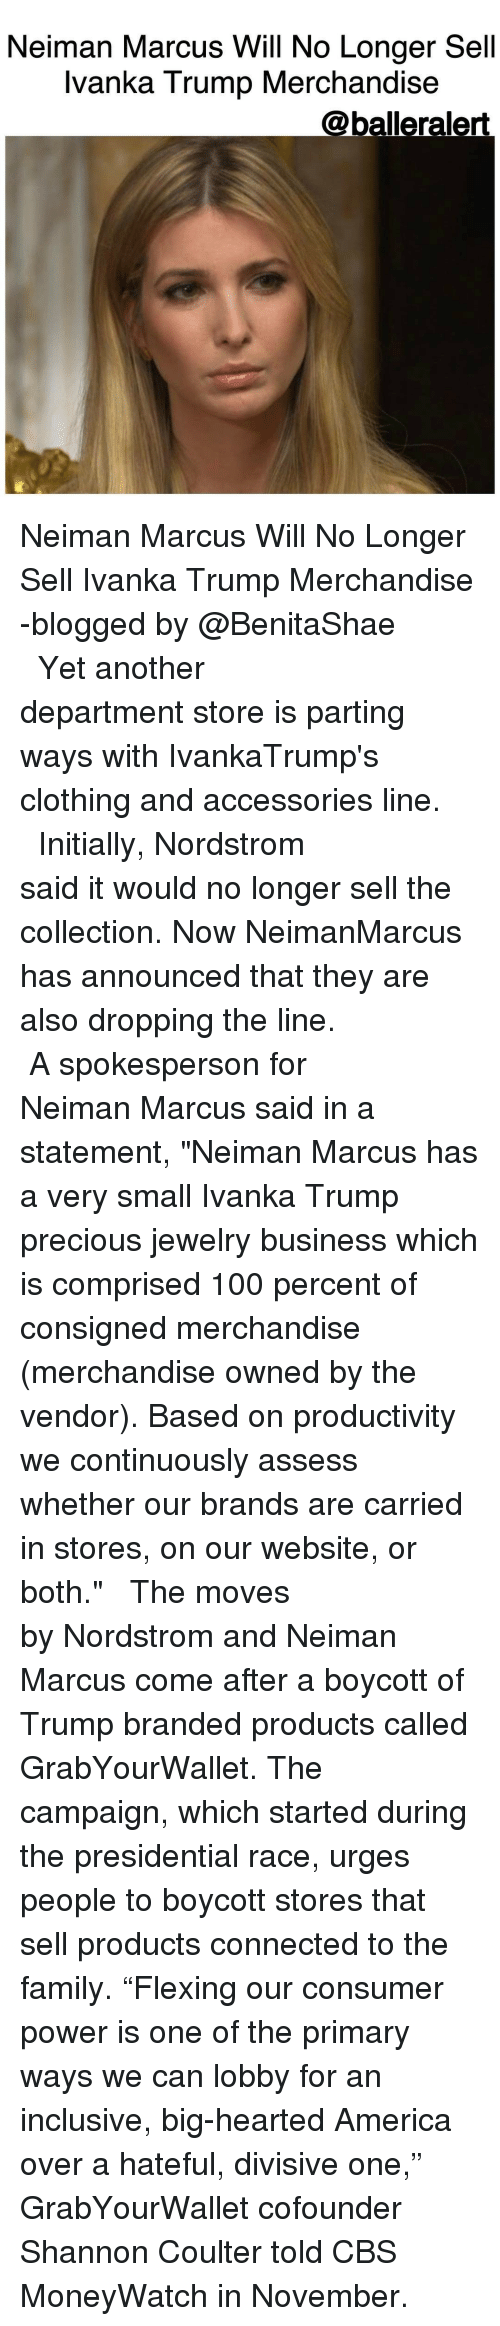 """consumate: Neiman Marcus Will No Longer Sell  Ivanka Trump Merchandise  @balleralert. Neiman Marcus Will No Longer Sell Ivanka Trump Merchandise -blogged by @BenitaShae ⠀⠀⠀⠀⠀⠀⠀⠀⠀ ⠀⠀⠀⠀⠀⠀⠀⠀⠀ Yet another department store is parting ways with IvankaTrump's clothing and accessories line. ⠀⠀⠀⠀⠀⠀⠀⠀⠀ ⠀⠀⠀⠀⠀⠀⠀⠀⠀ Initially, Nordstrom said it would no longer sell the collection. Now NeimanMarcus has announced that they are also dropping the line. ⠀⠀⠀⠀⠀⠀⠀⠀⠀ ⠀⠀⠀⠀⠀⠀⠀⠀⠀ A spokesperson for Neiman Marcus said in a statement, """"Neiman Marcus has a very small Ivanka Trump precious jewelry business which is comprised 100 percent of consigned merchandise (merchandise owned by the vendor). Based on productivity we continuously assess whether our brands are carried in stores, on our website, or both."""" ⠀⠀⠀⠀⠀⠀⠀⠀⠀ ⠀⠀⠀⠀⠀⠀⠀⠀⠀ The moves by Nordstrom and Neiman Marcus come after a boycott of Trump branded products called GrabYourWallet. The campaign, which started during the presidential race, urges people to boycott stores that sell products connected to the family. """"Flexing our consumer power is one of the primary ways we can lobby for an inclusive, big-hearted America over a hateful, divisive one,"""" GrabYourWallet cofounder Shannon Coulter told CBS MoneyWatch in November."""